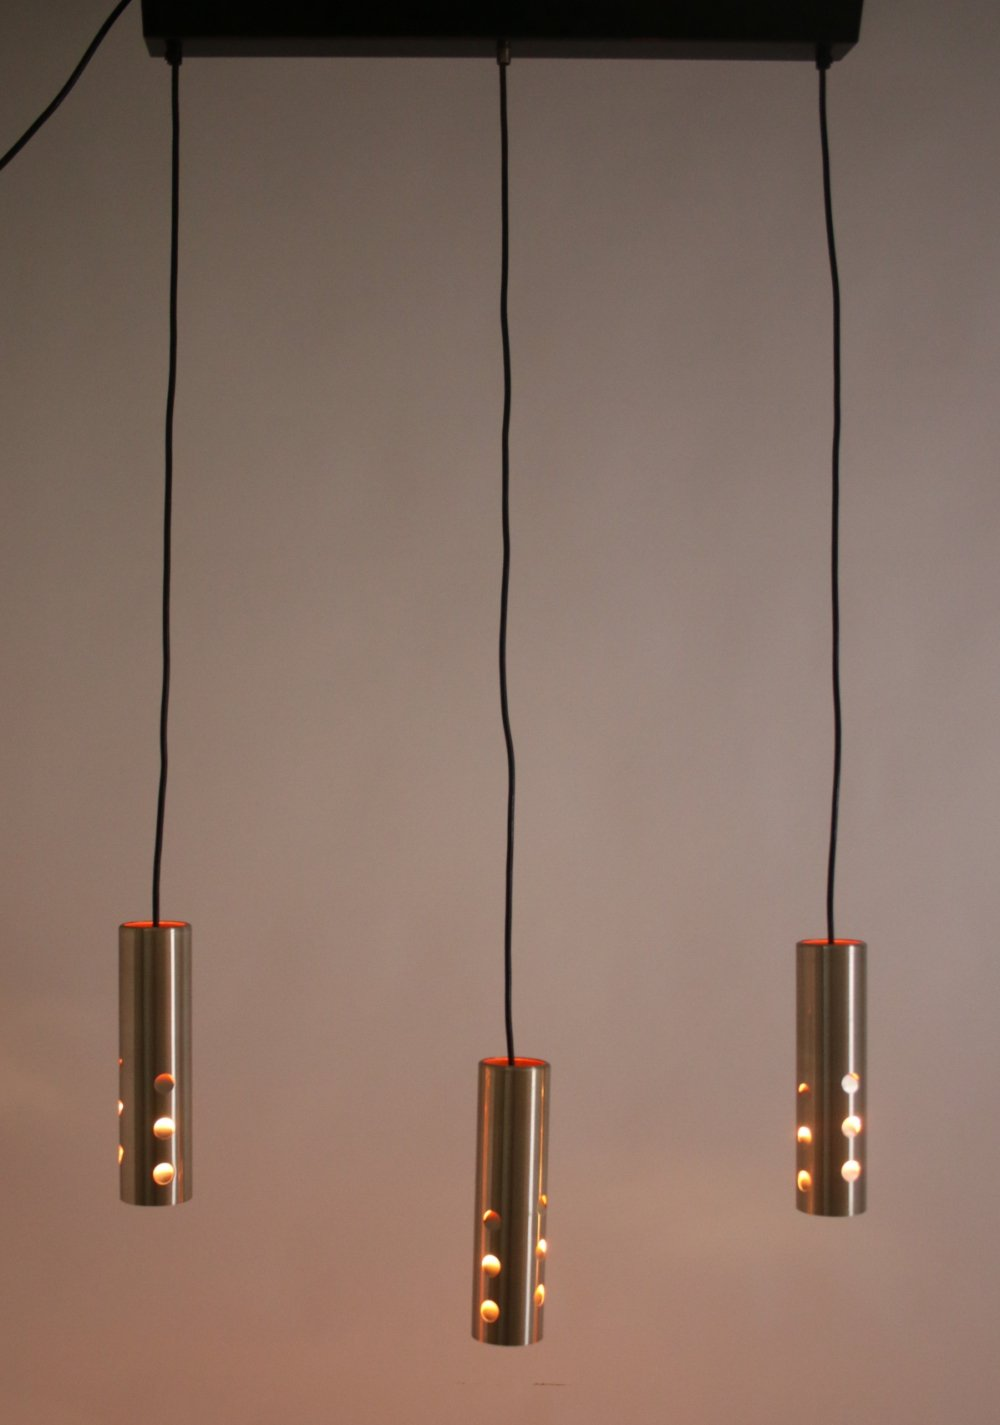 Space age aluminium Hanging lamp with 3 light points